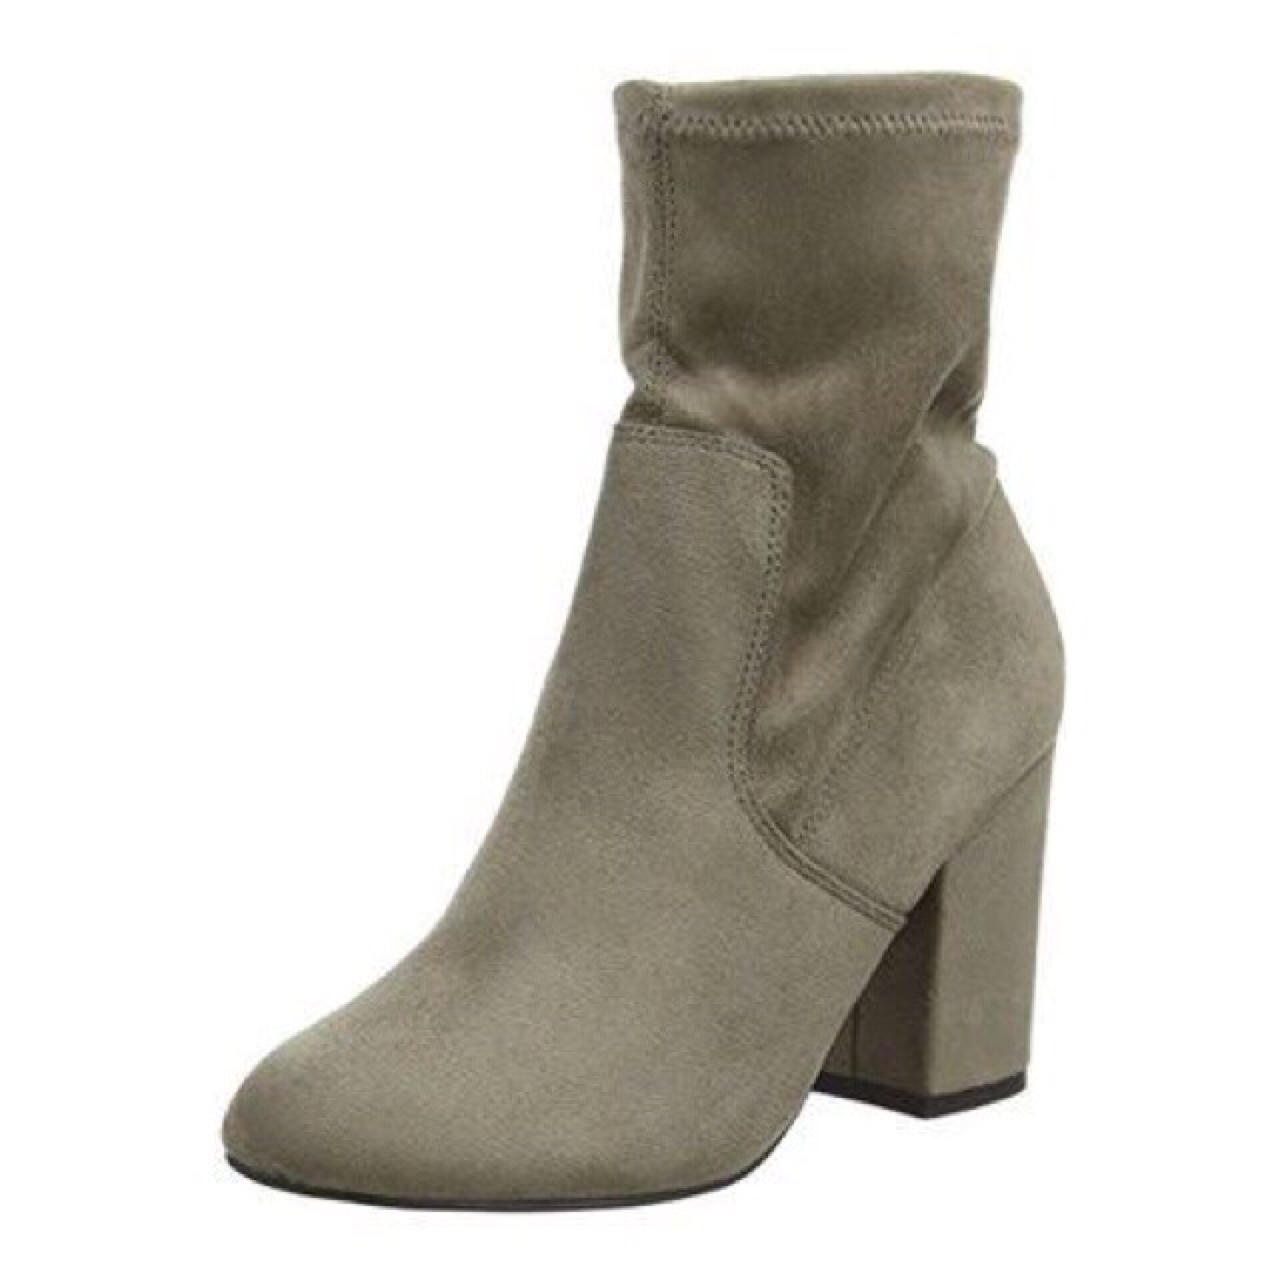 New Look Grey Sock ankle Boots. Brand